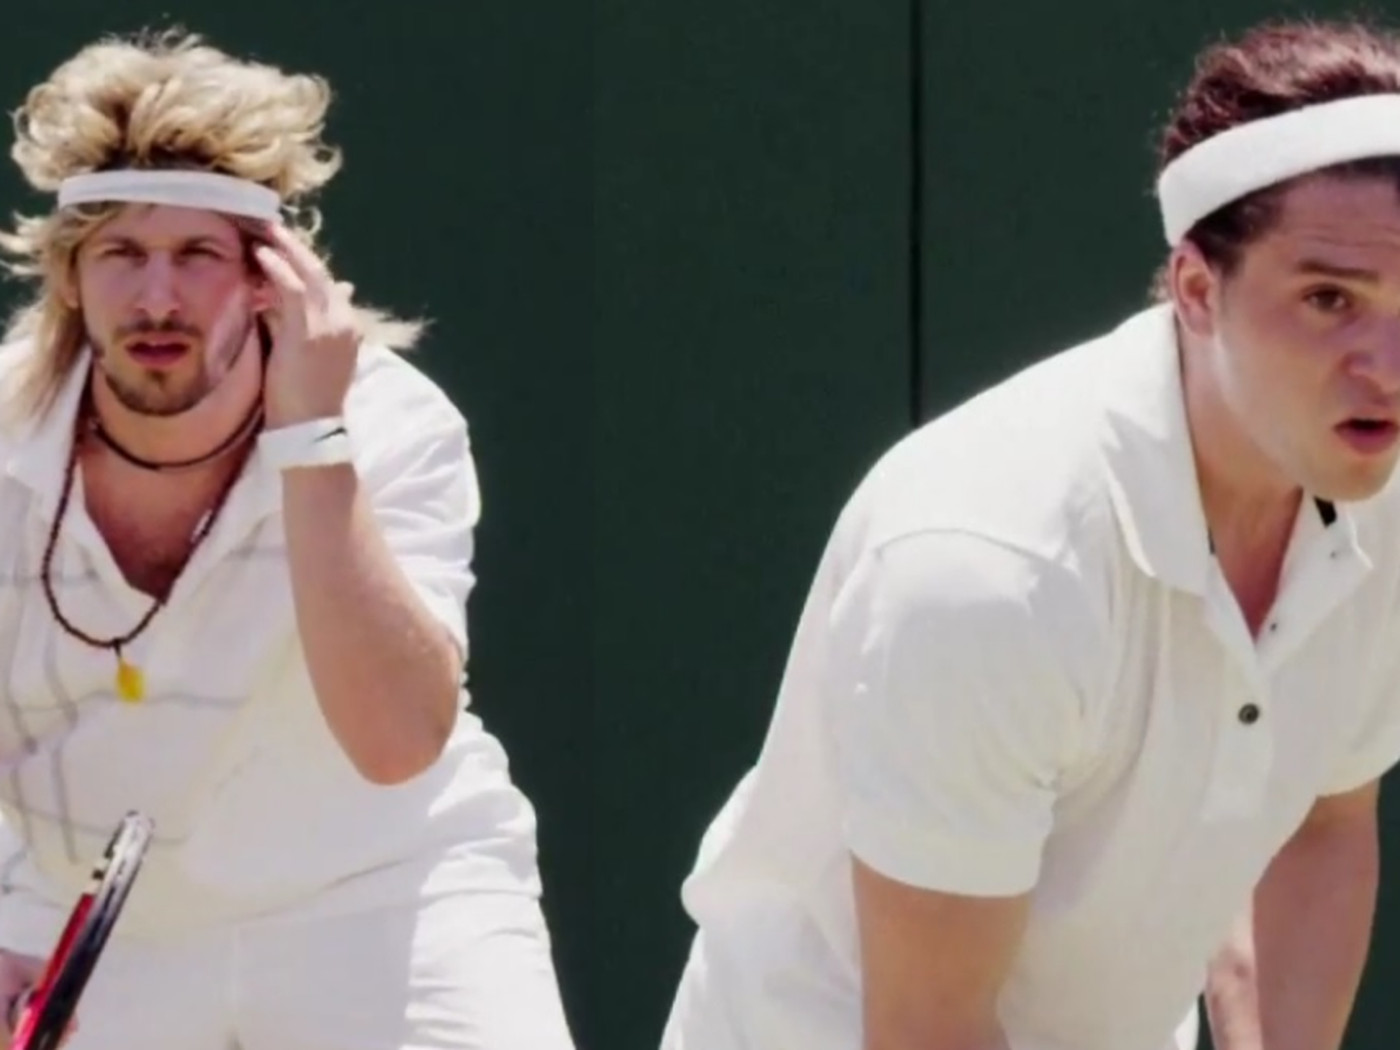 Andy Samberg is making a follow-up to tennis mockumentary 7 Days in